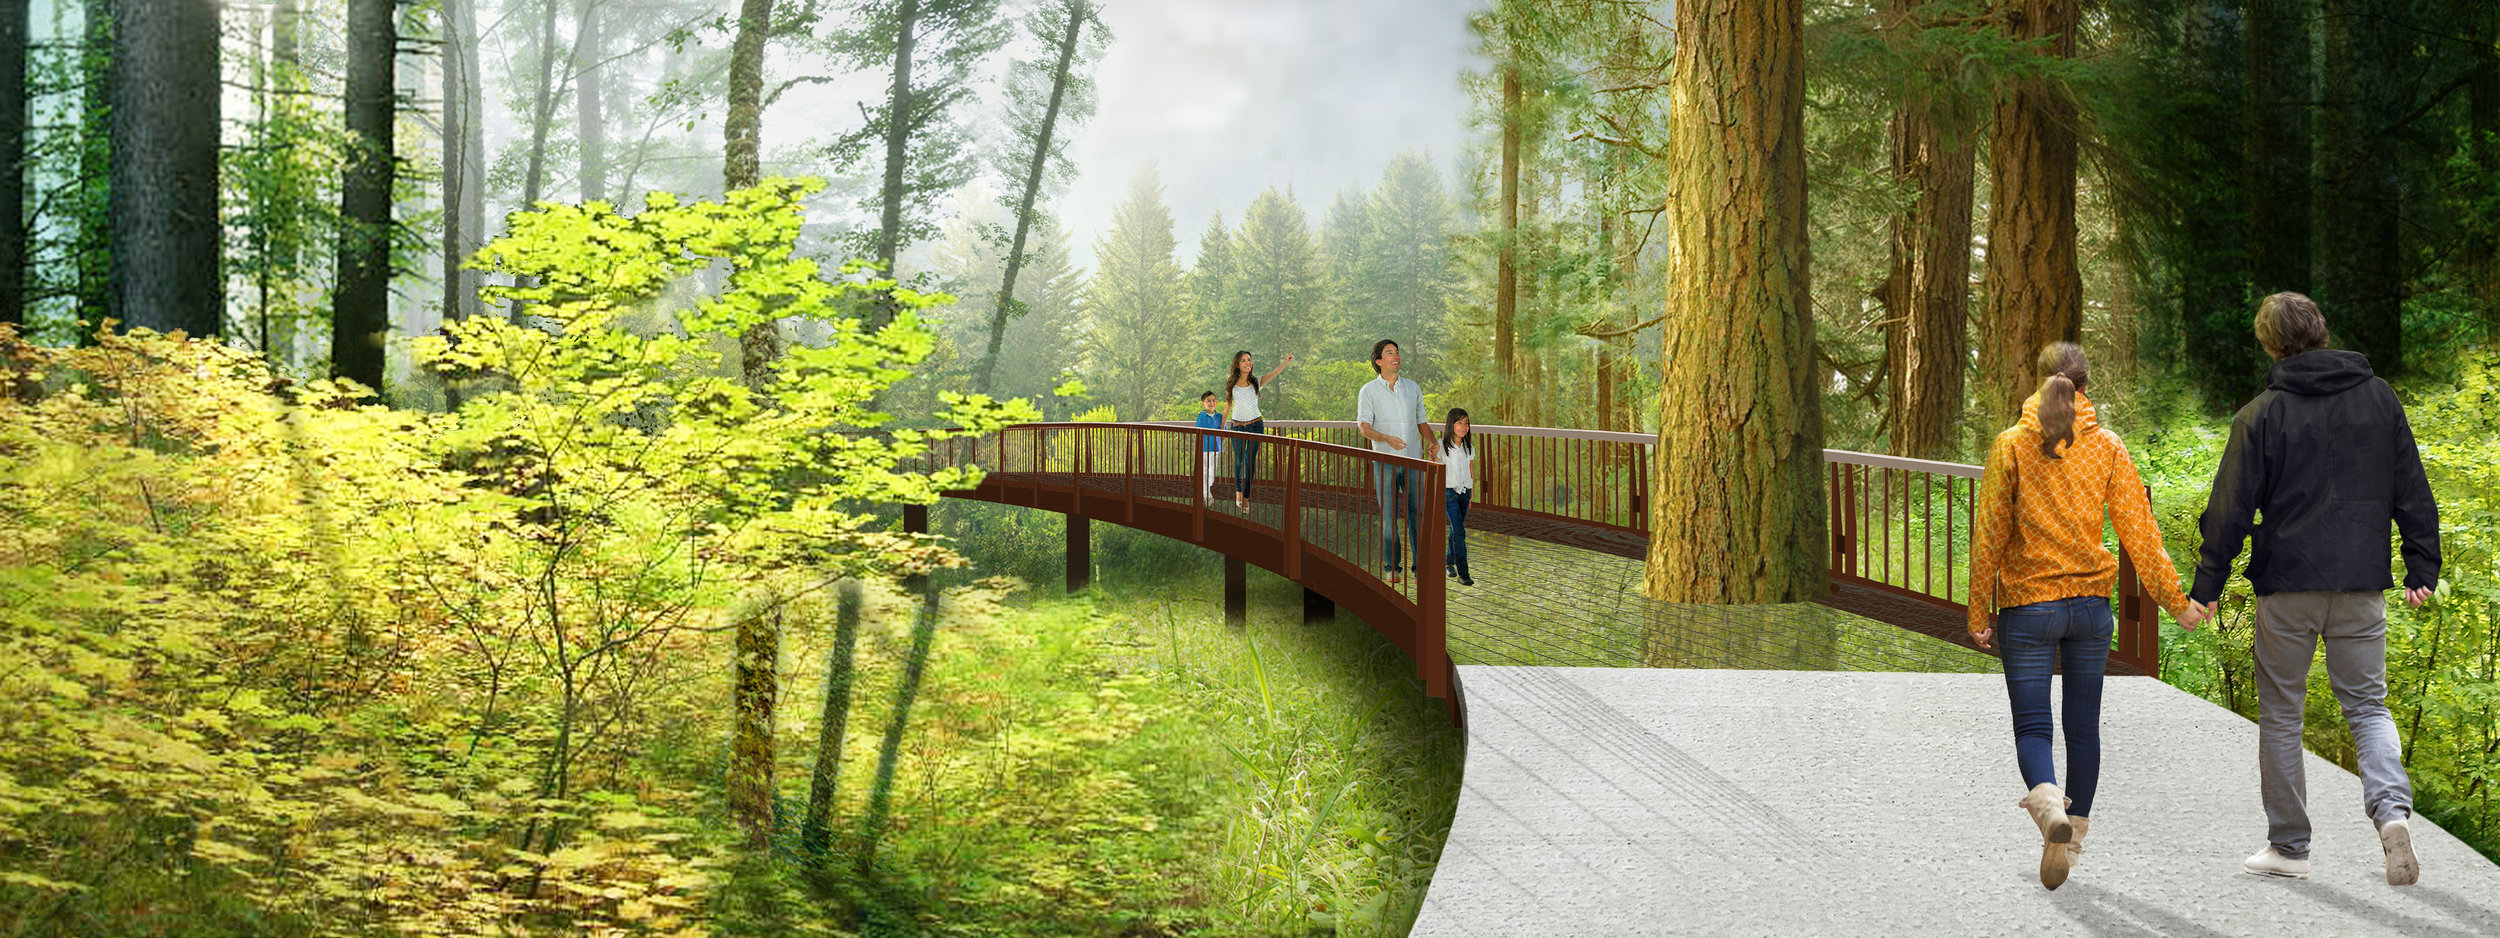 The Tree Walk offers an immersive experience of canopy from 36- feet above the forest floor. The fireside terrace is located on the highpoint of the upper garden at the edge of the forest. The arbor will be designed for year-round use with tent fabric that will enclose the space in the winter. A feature of the terrace is a linear gas outdoor fire feature.